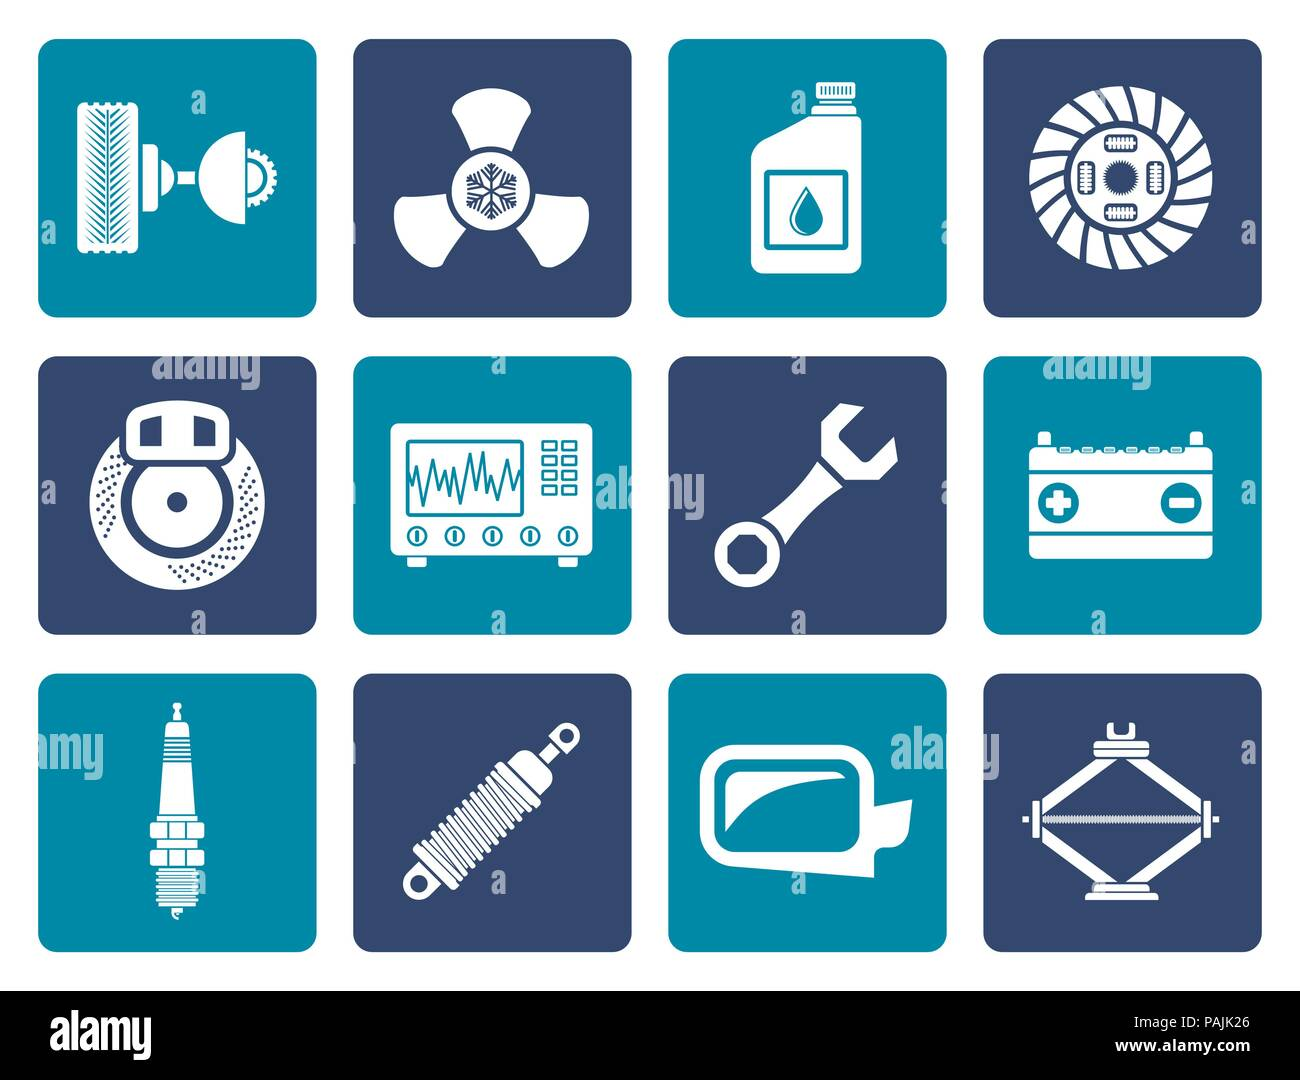 Flat Car Parts And Services Icons Vector Icon Set Stock Vector Art